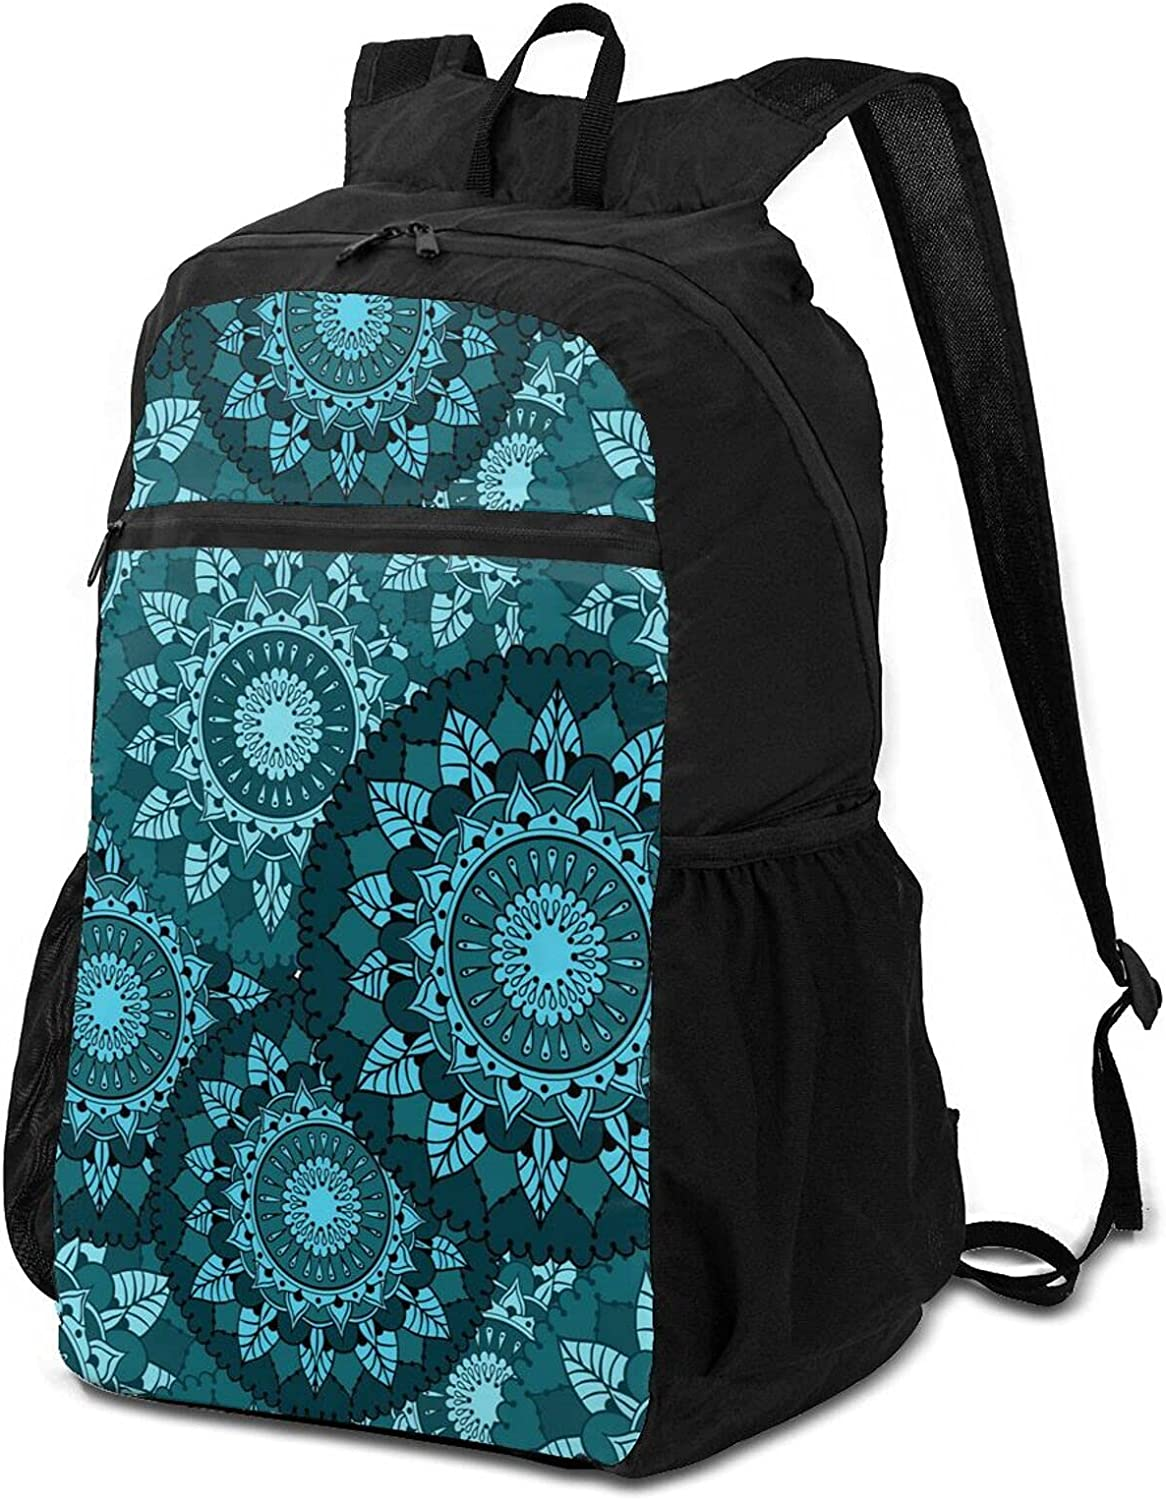 Indefinitely Circular Floral Ornaments Lightweight Backpack Bombing free shipping Packable Wome for